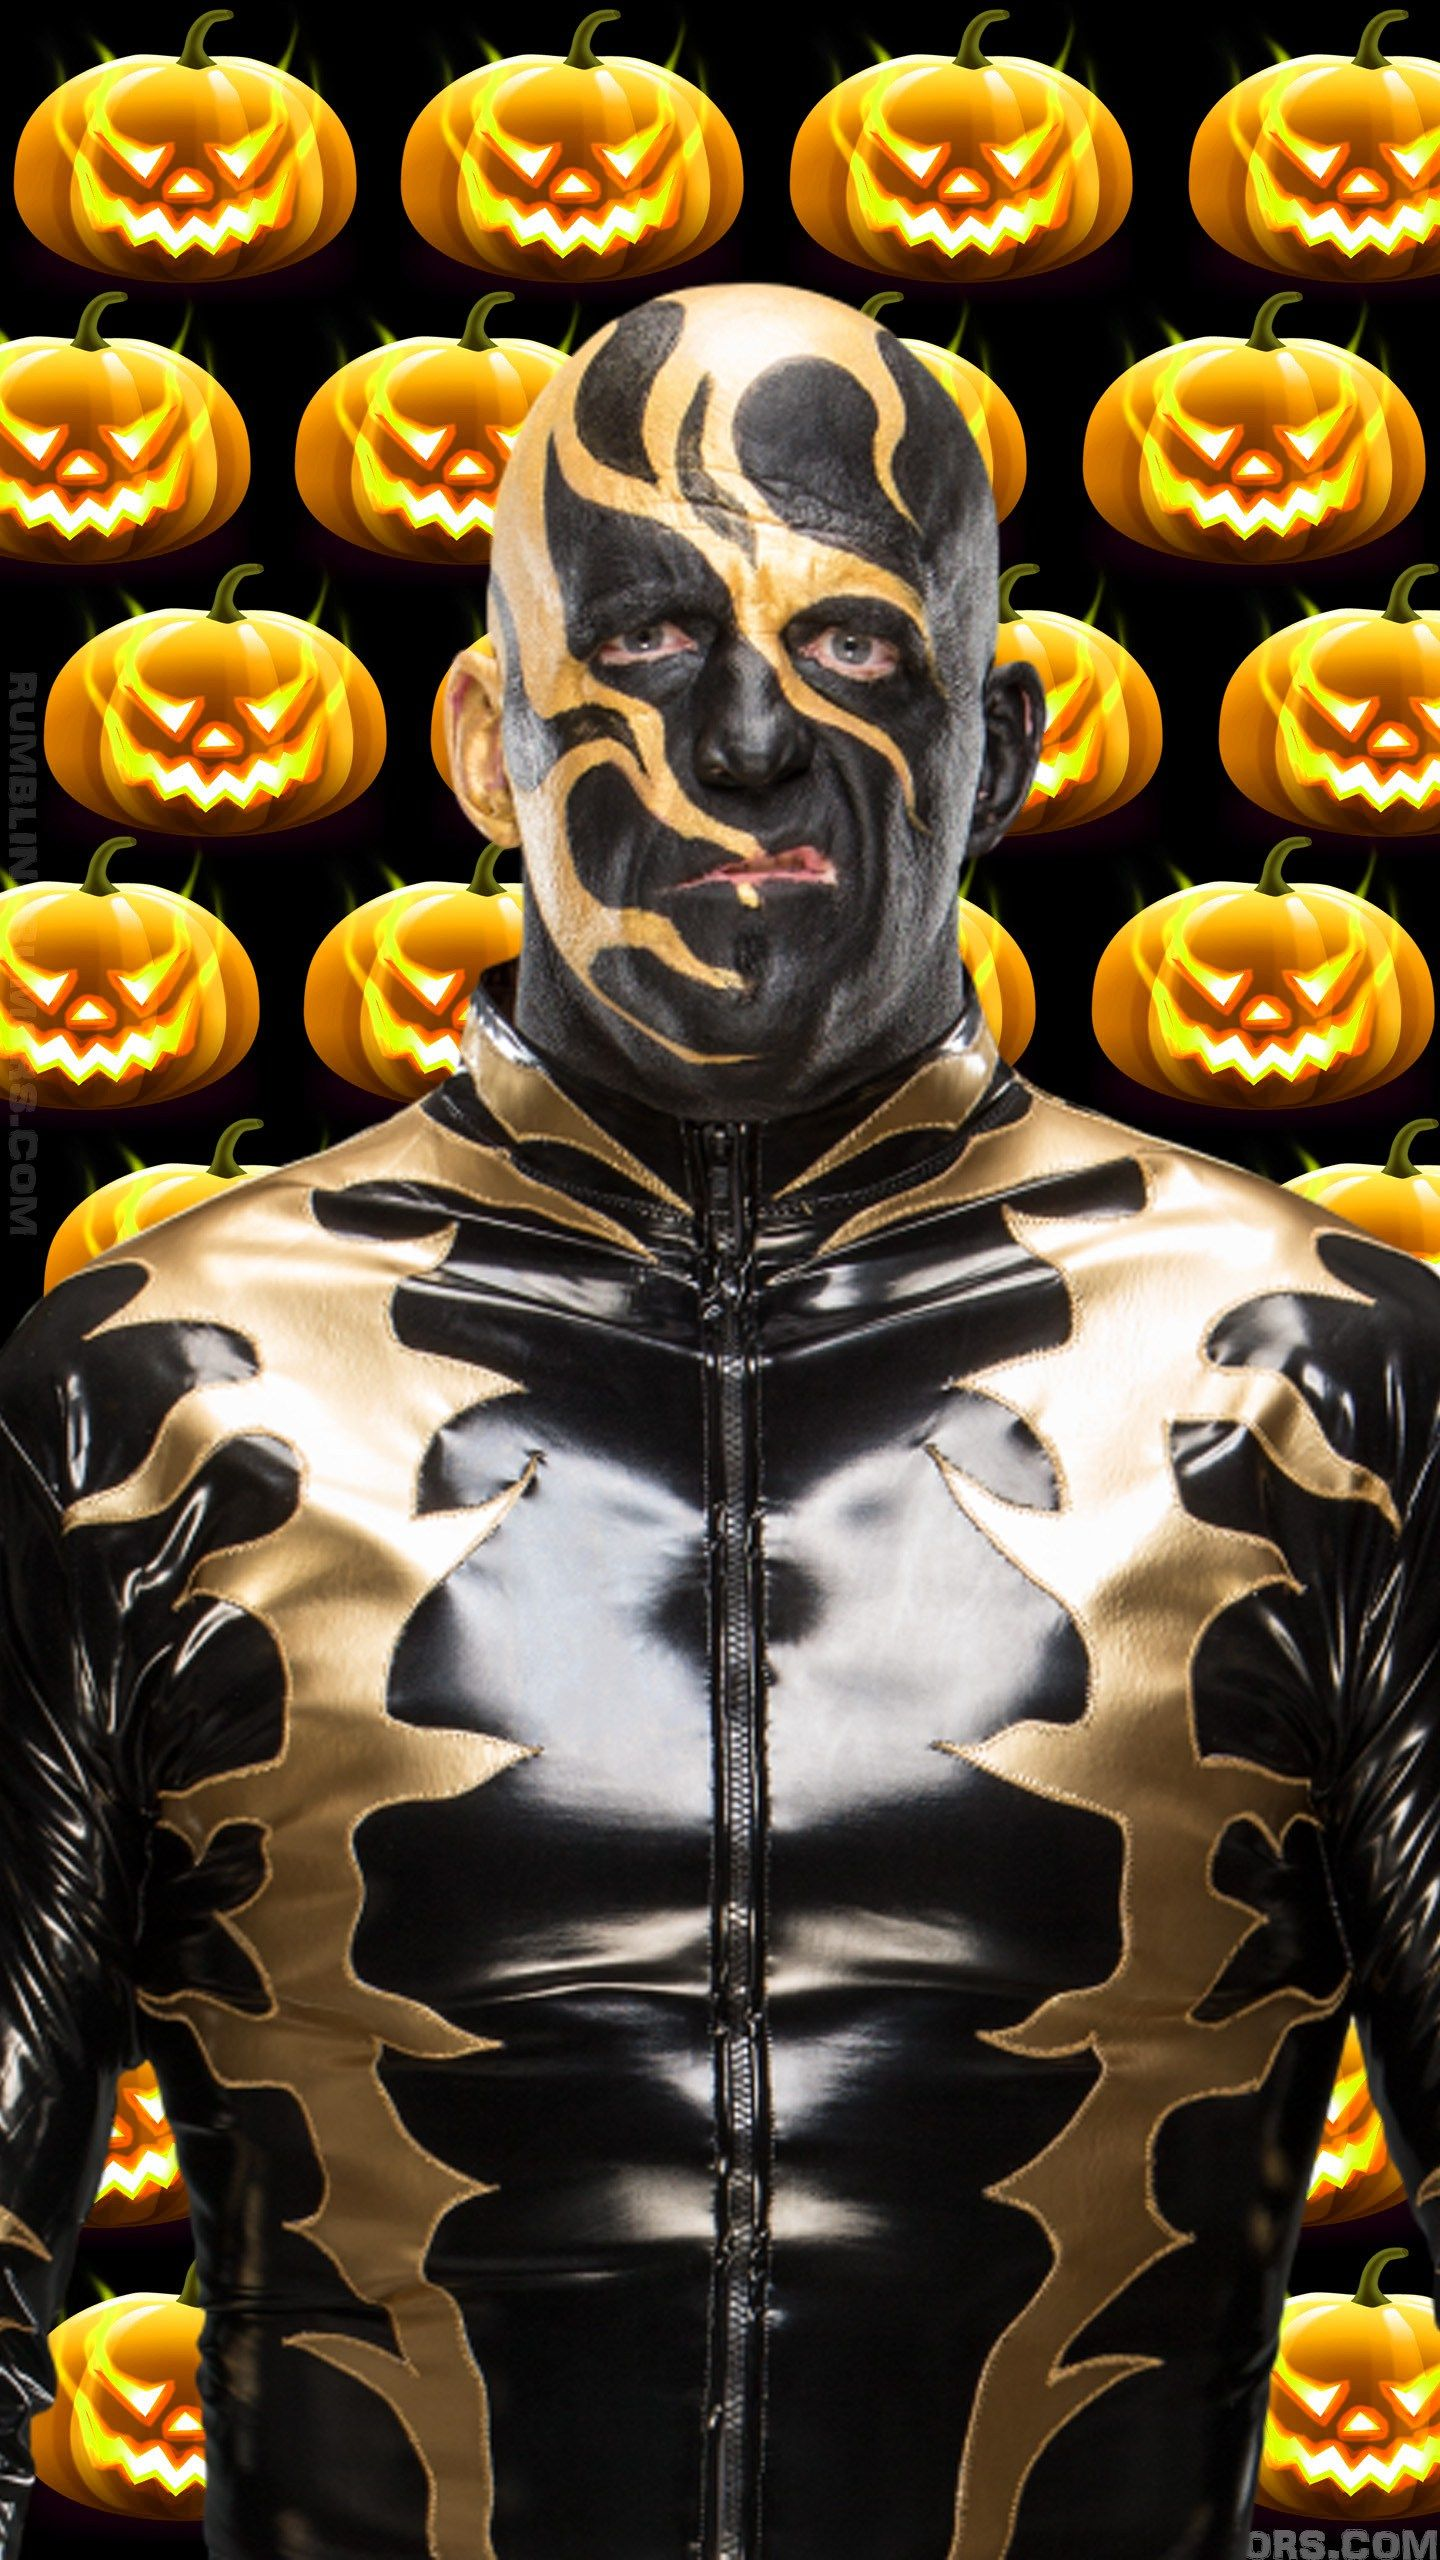 Feast Your Eyes On The New 2017 Halloween Edition Of Our WWE NXT Wallpaper Archive We Have About 3 To 5 Per Page